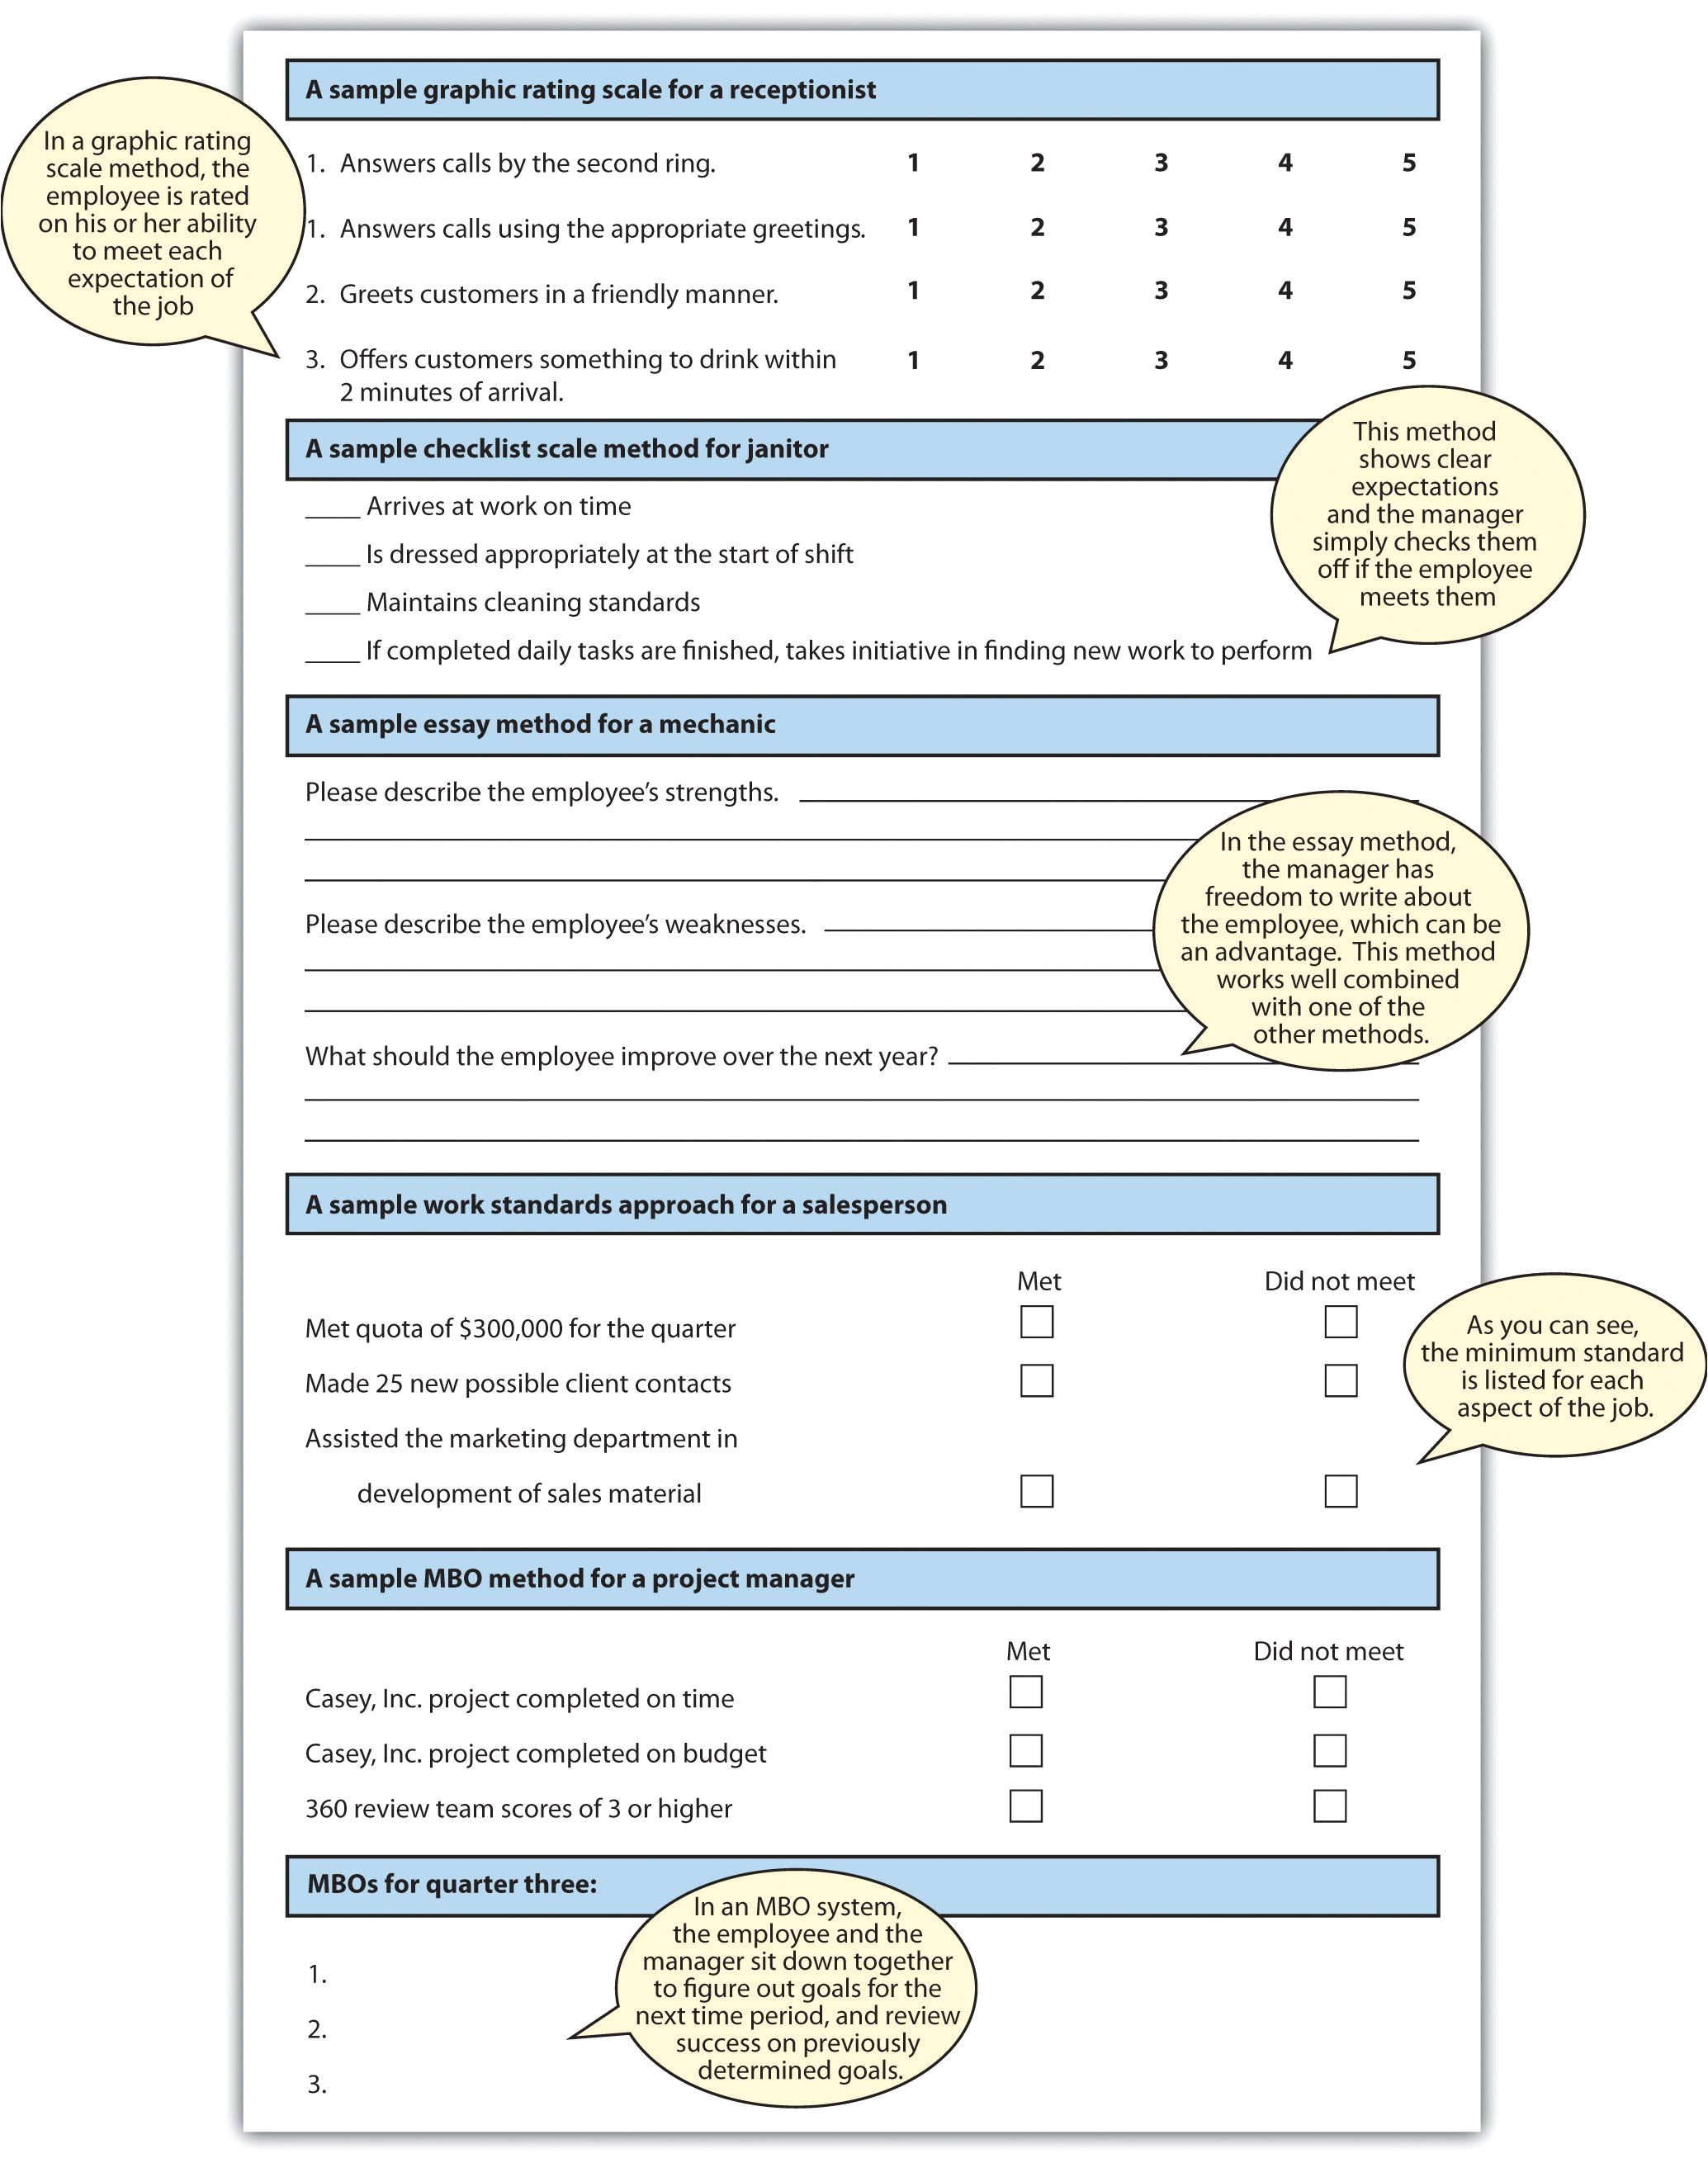 Mission Essential Contractor Services Plan Template Mission Essential Contractor Services Plan Template New